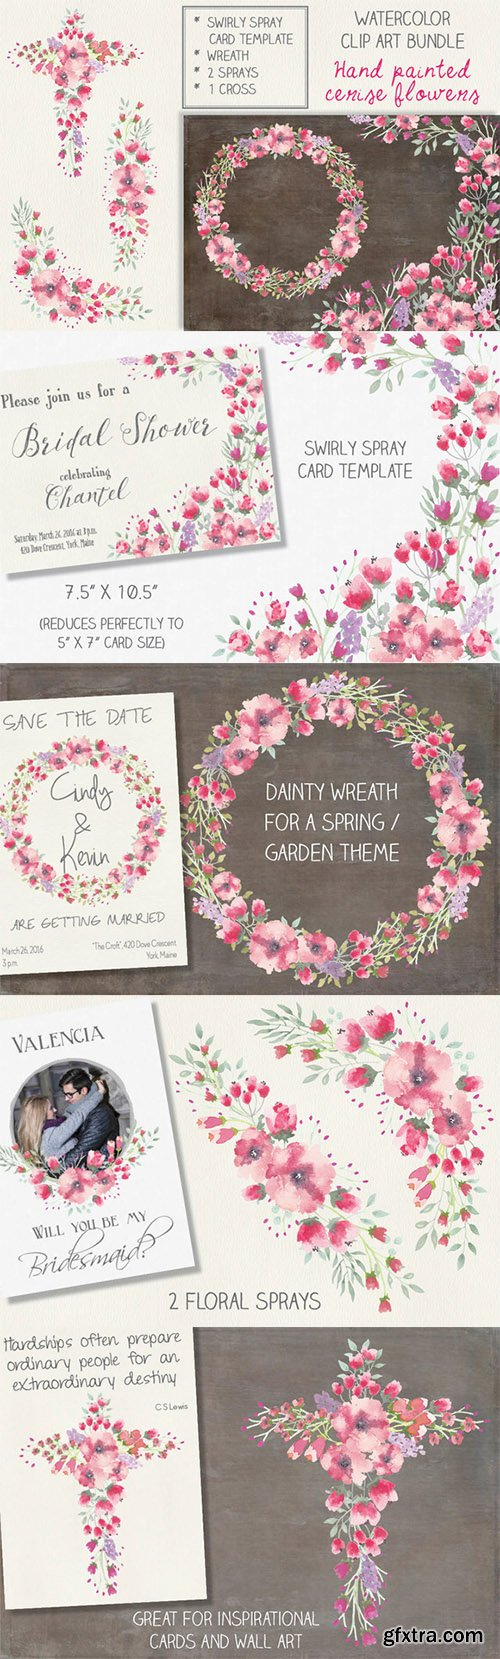 Watercolor clip art bundle: cerise - CM 554272